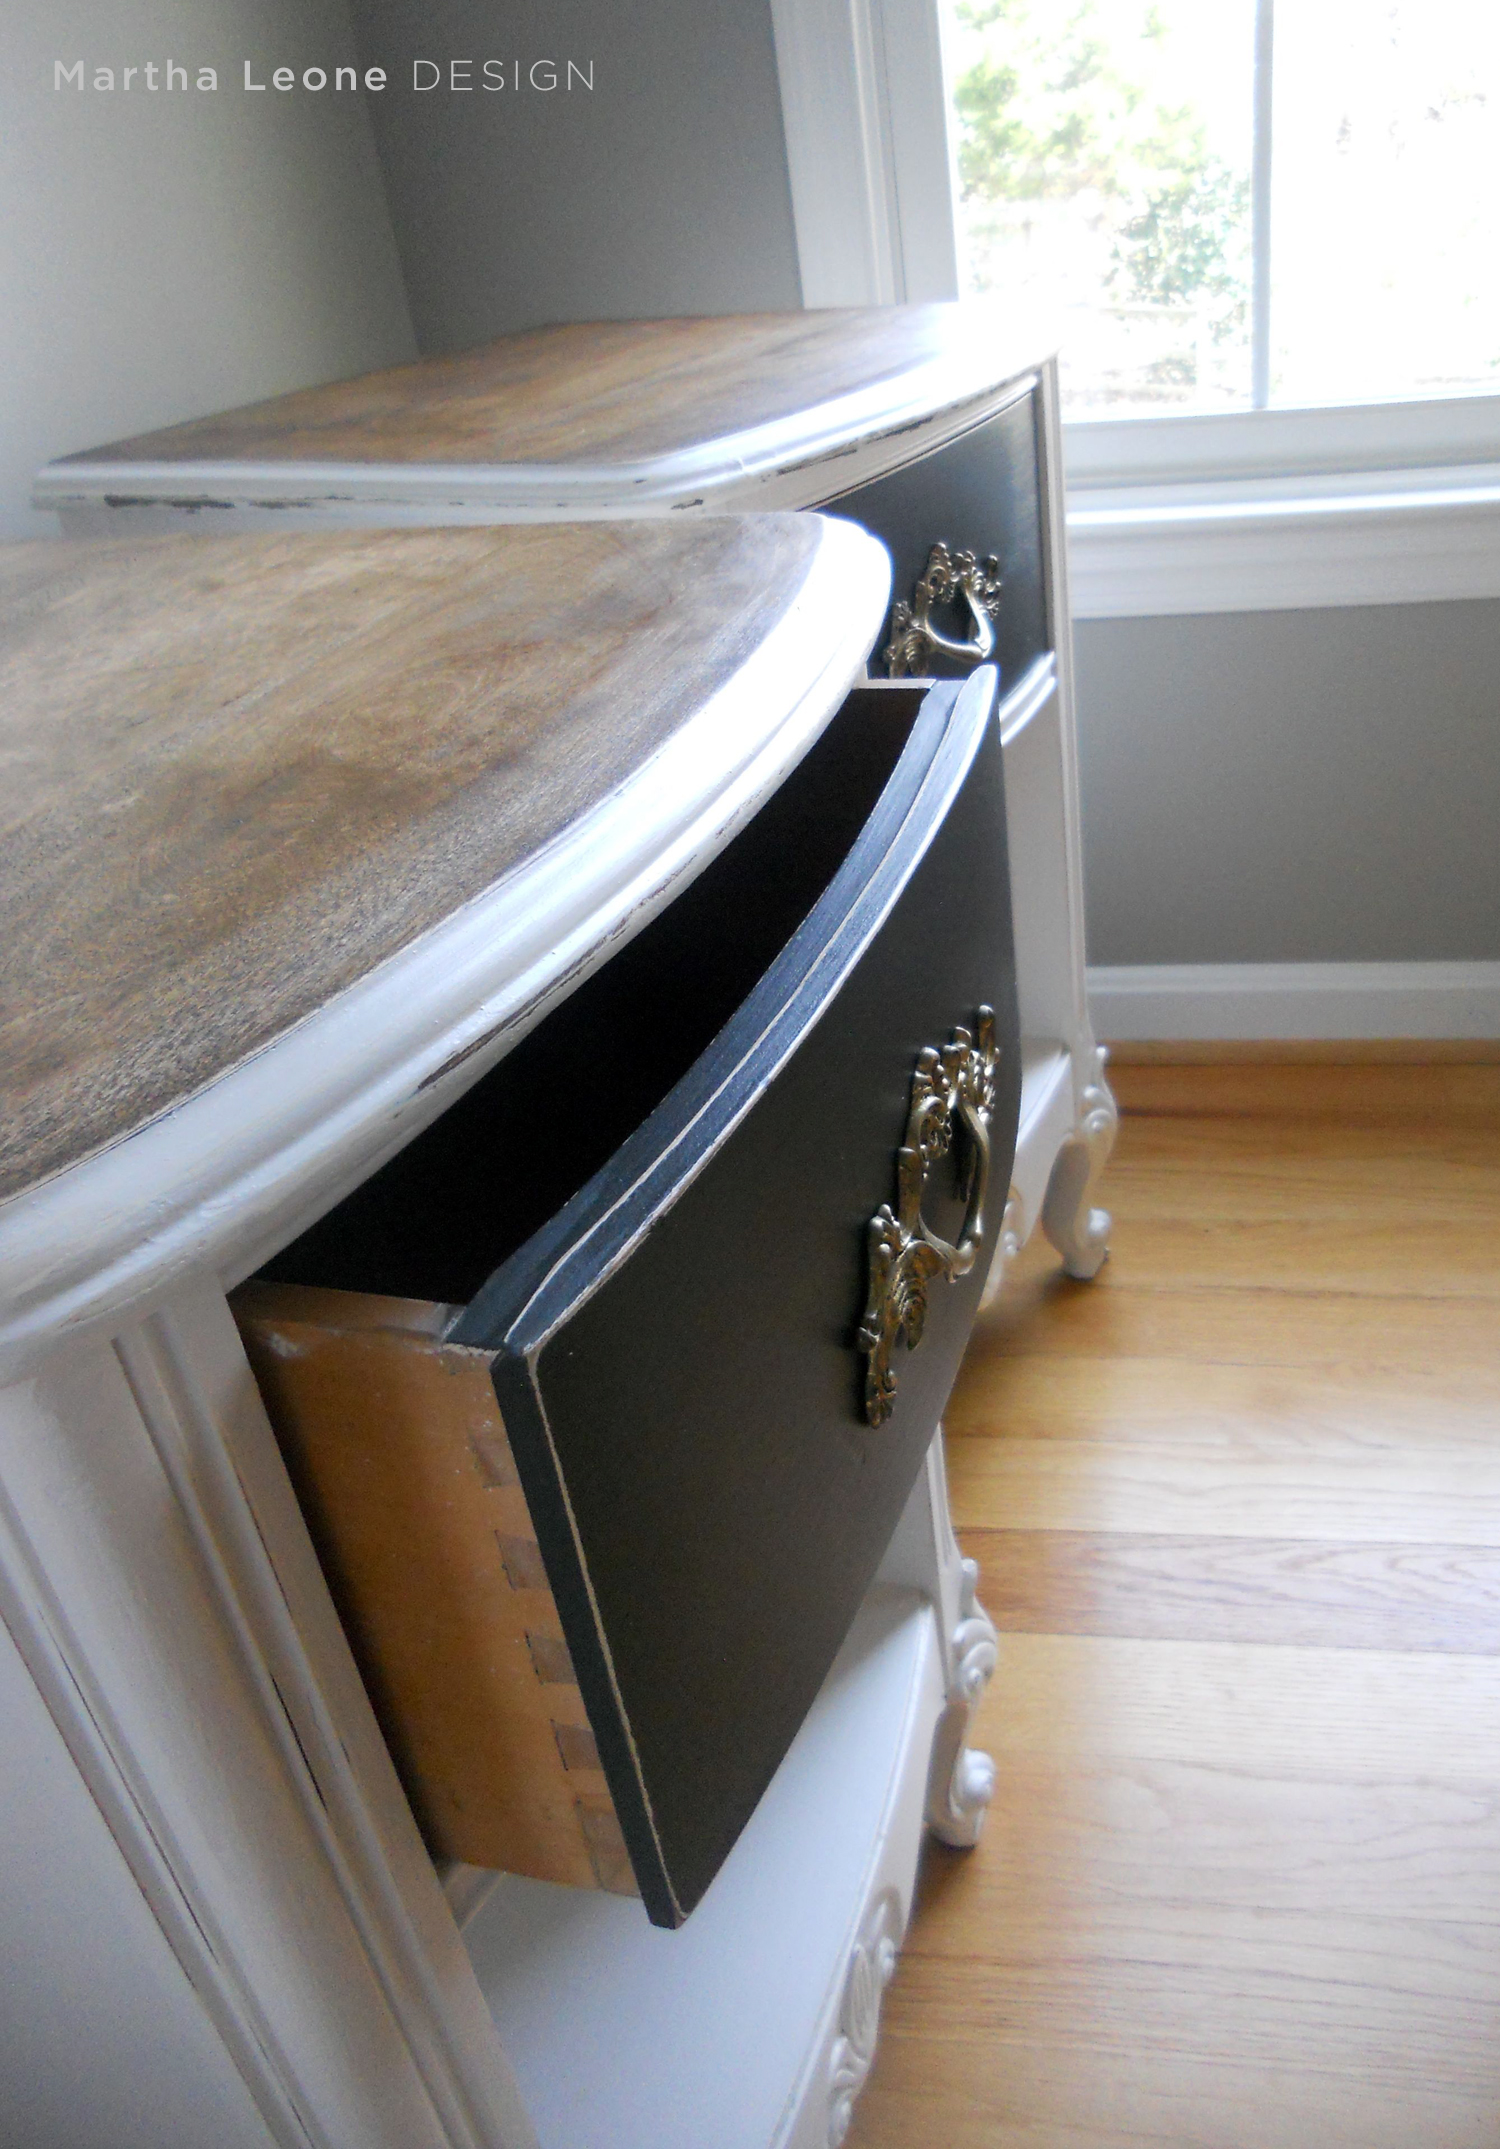 Nightstands at MarthaLeoneDesign3